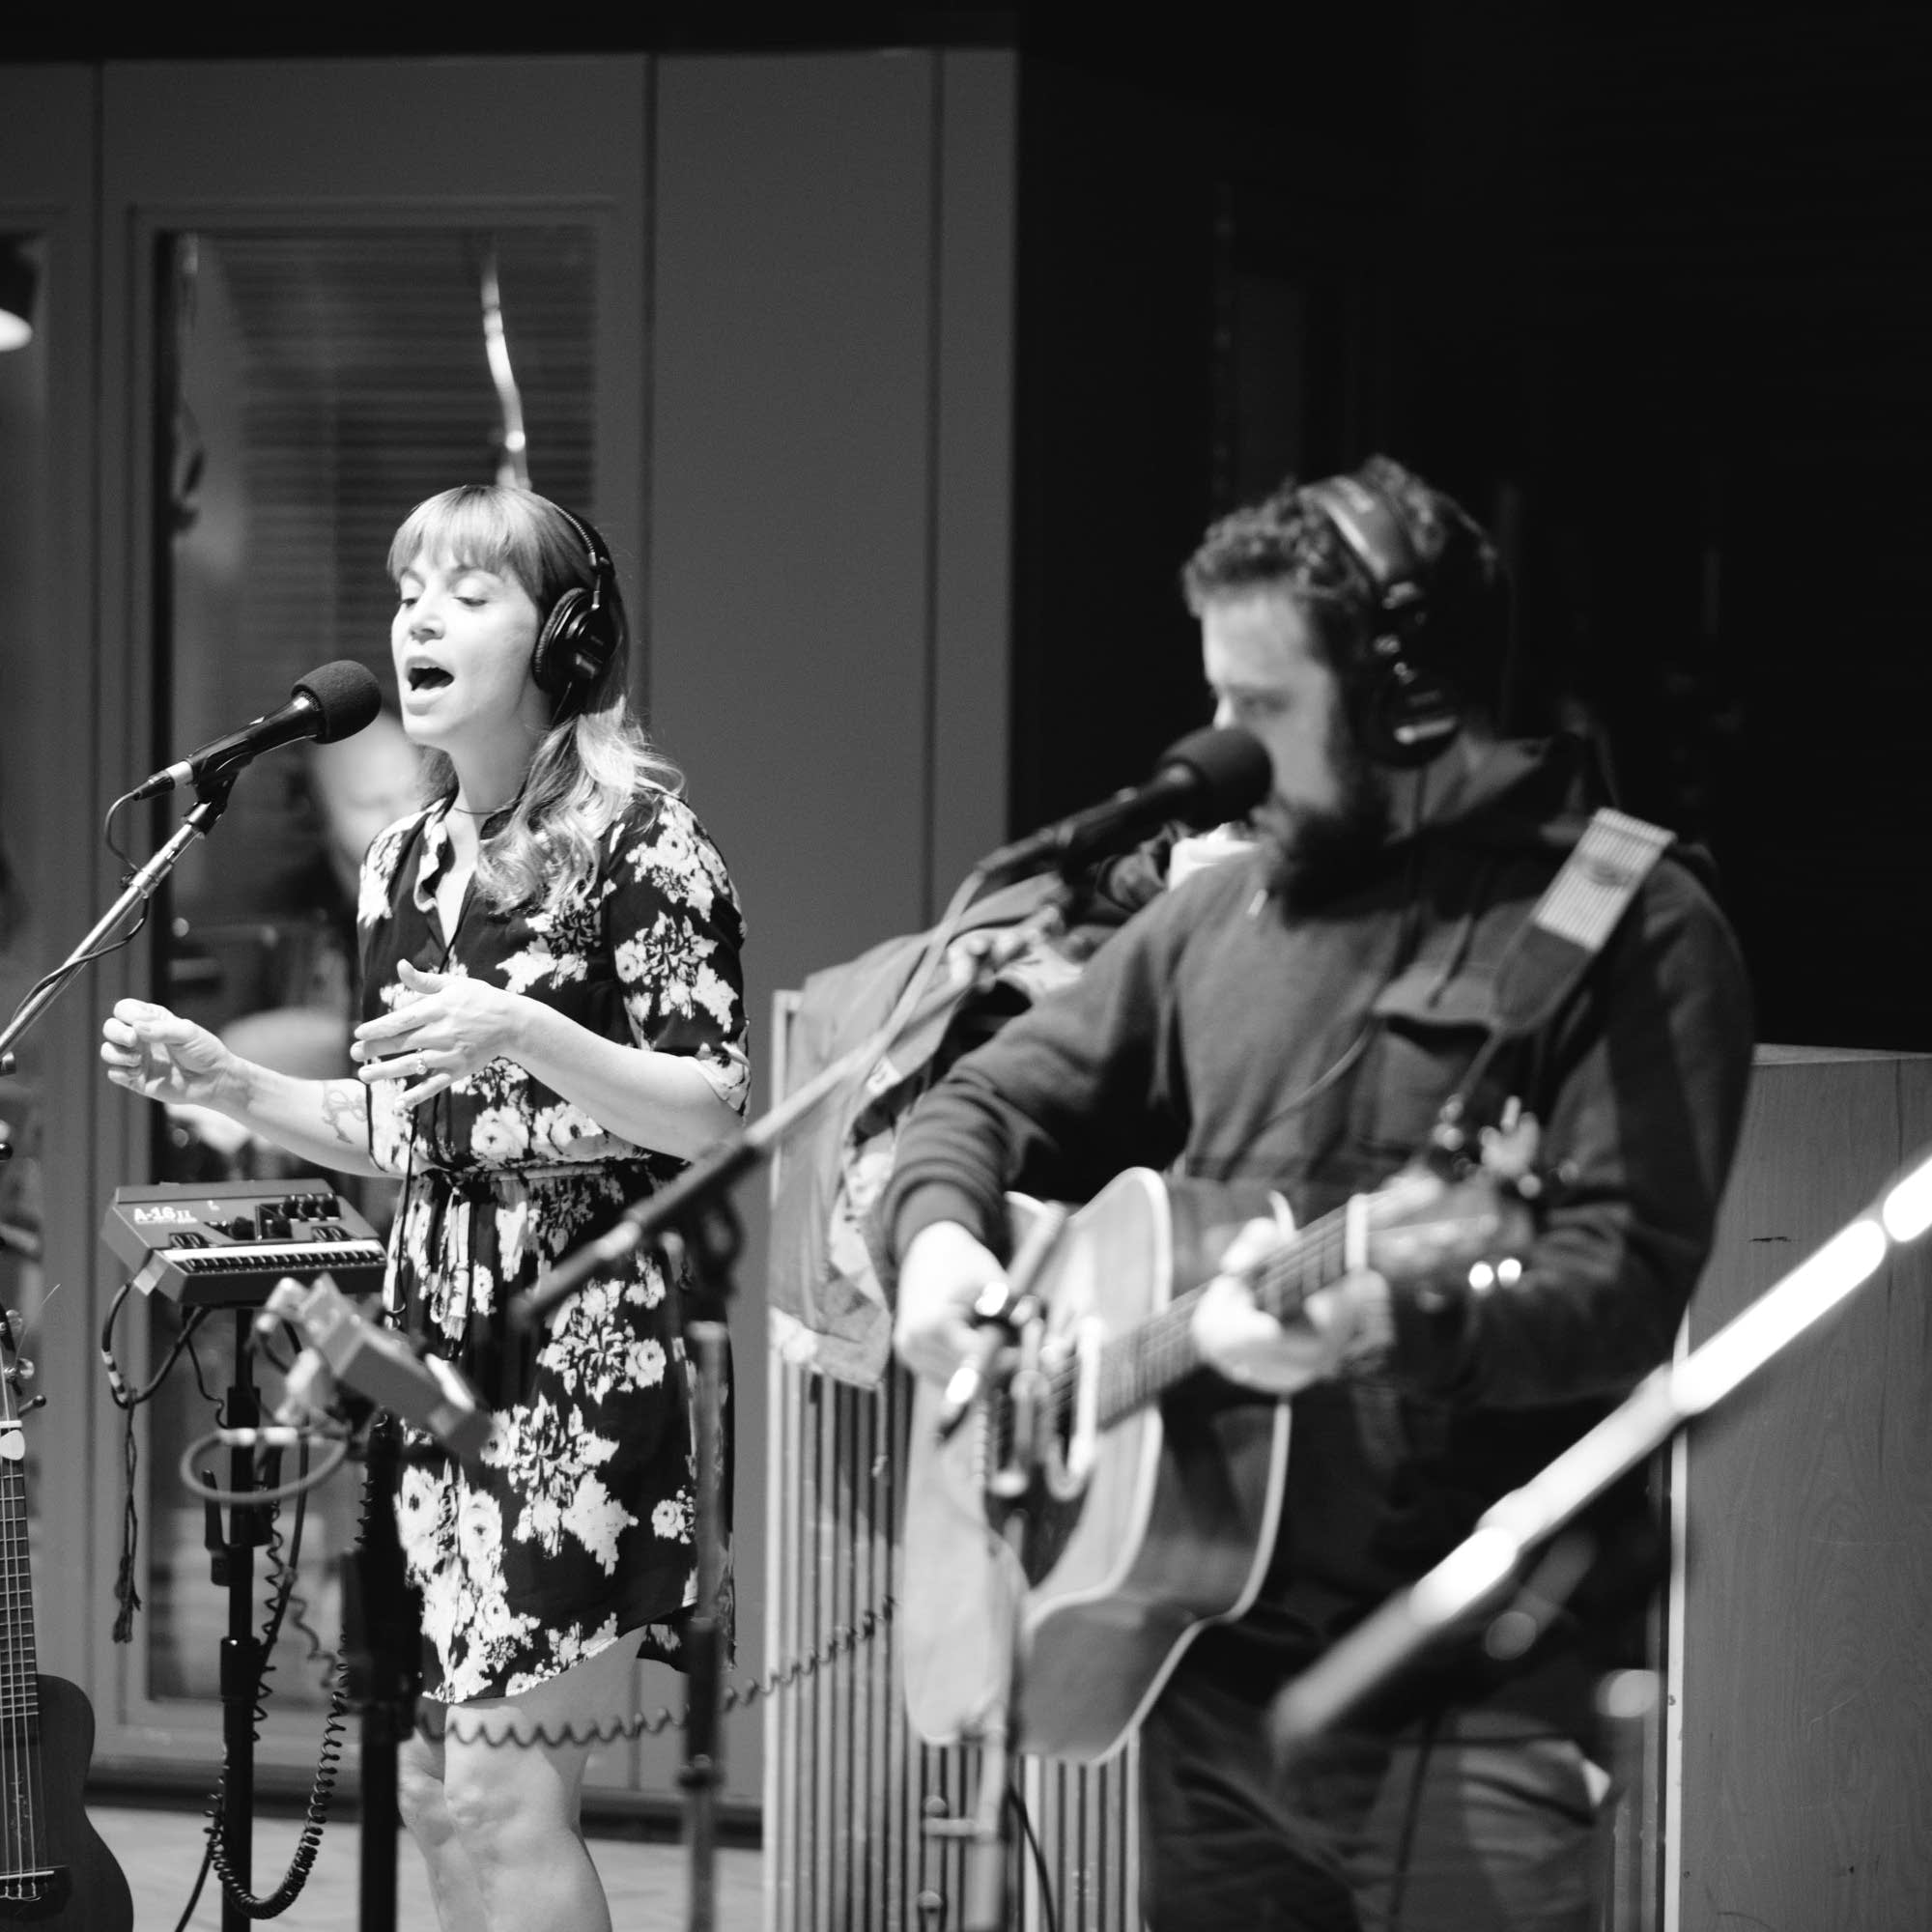 The Dustbowl Revival perform at Radio Heartland